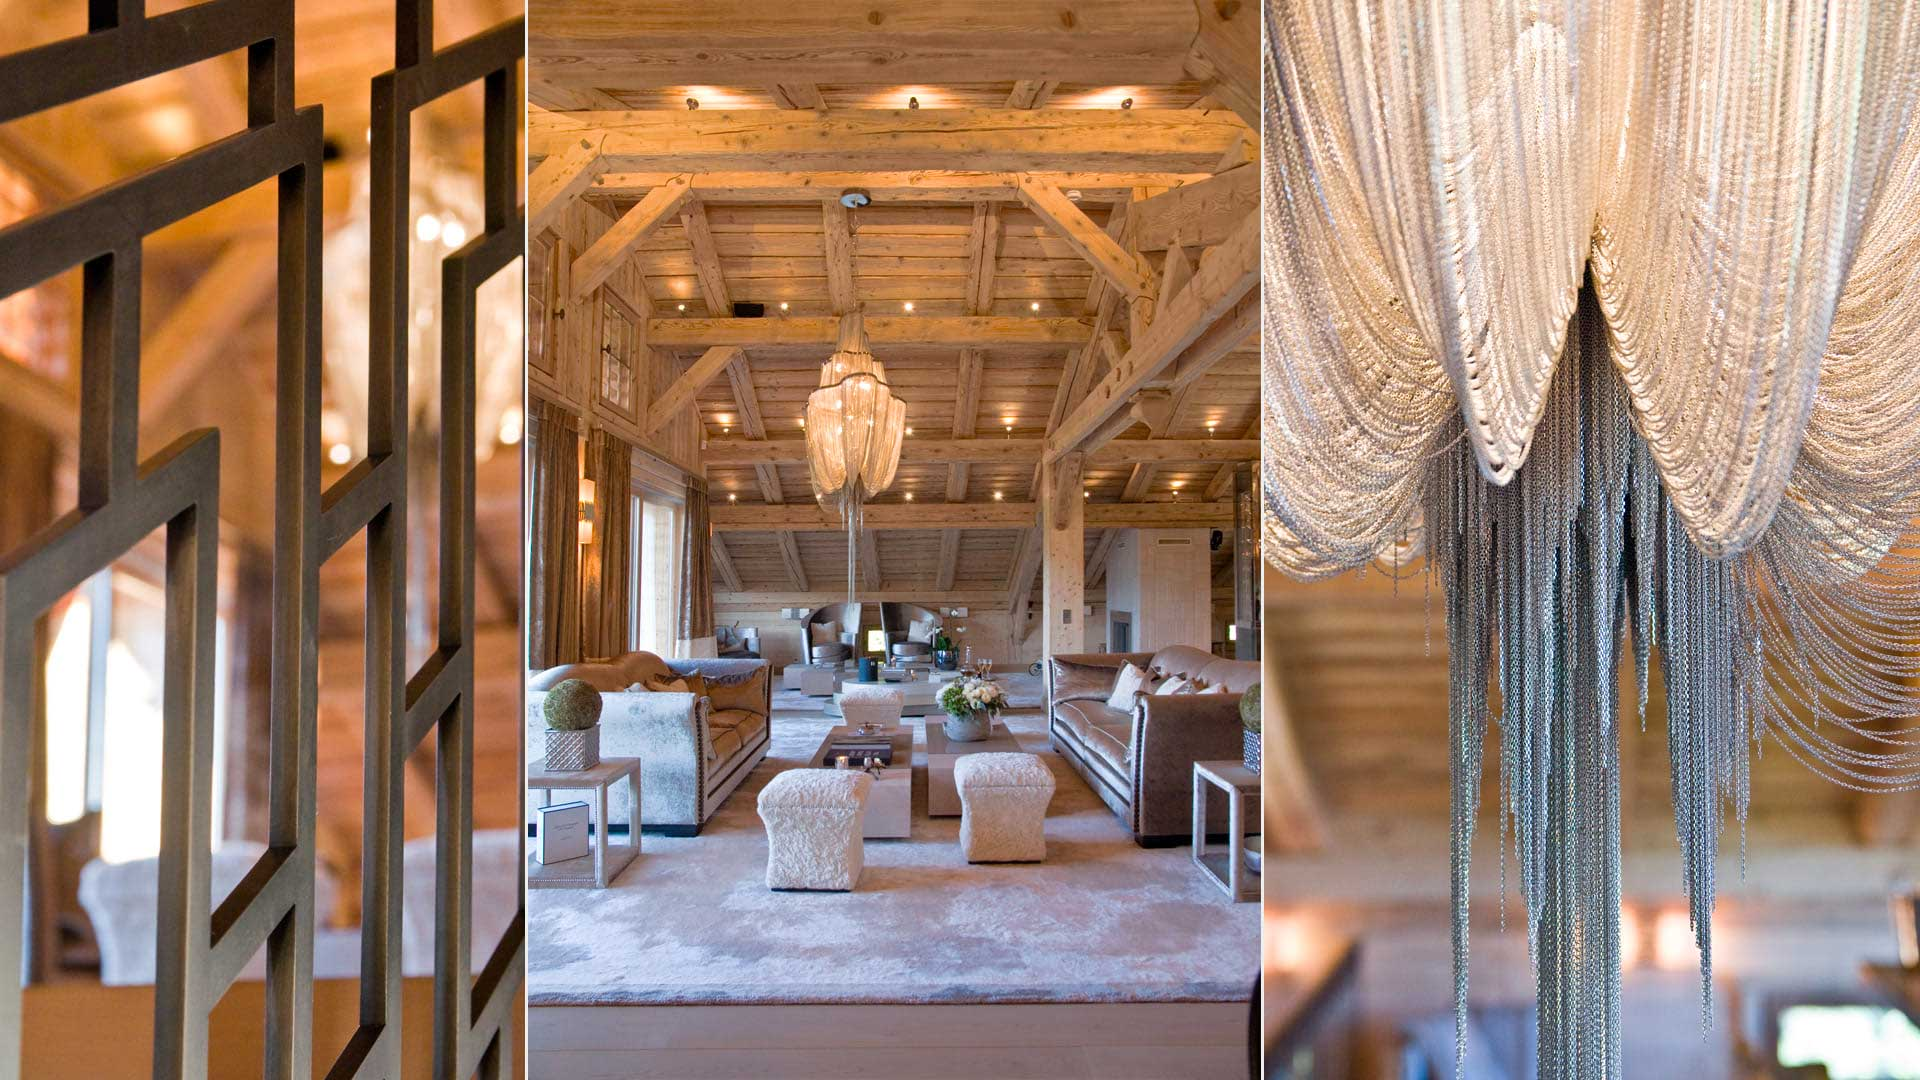 CHALET-FRENCH-ALPS-01-Dome-interior-design-Geneve-Suisse